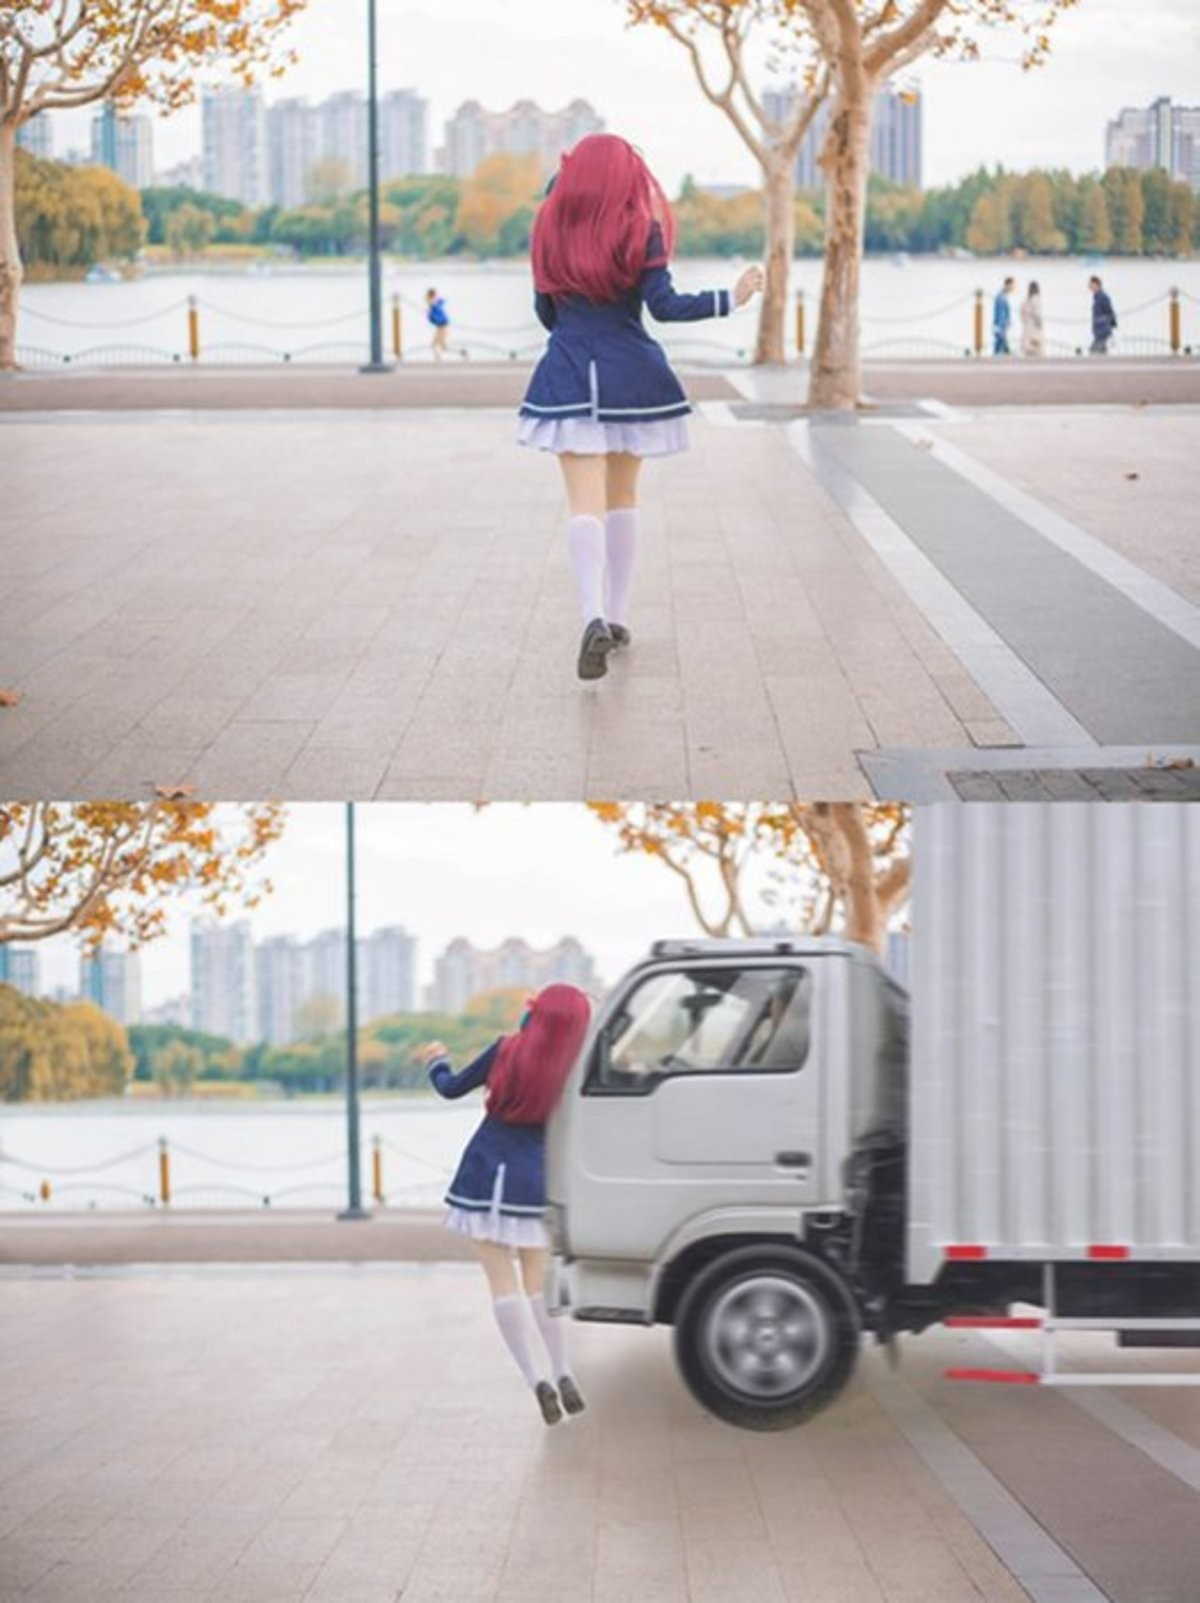 Truck-kun in live action. Poor editing but had me laugh for a second.. look both ways man. always look both ways.